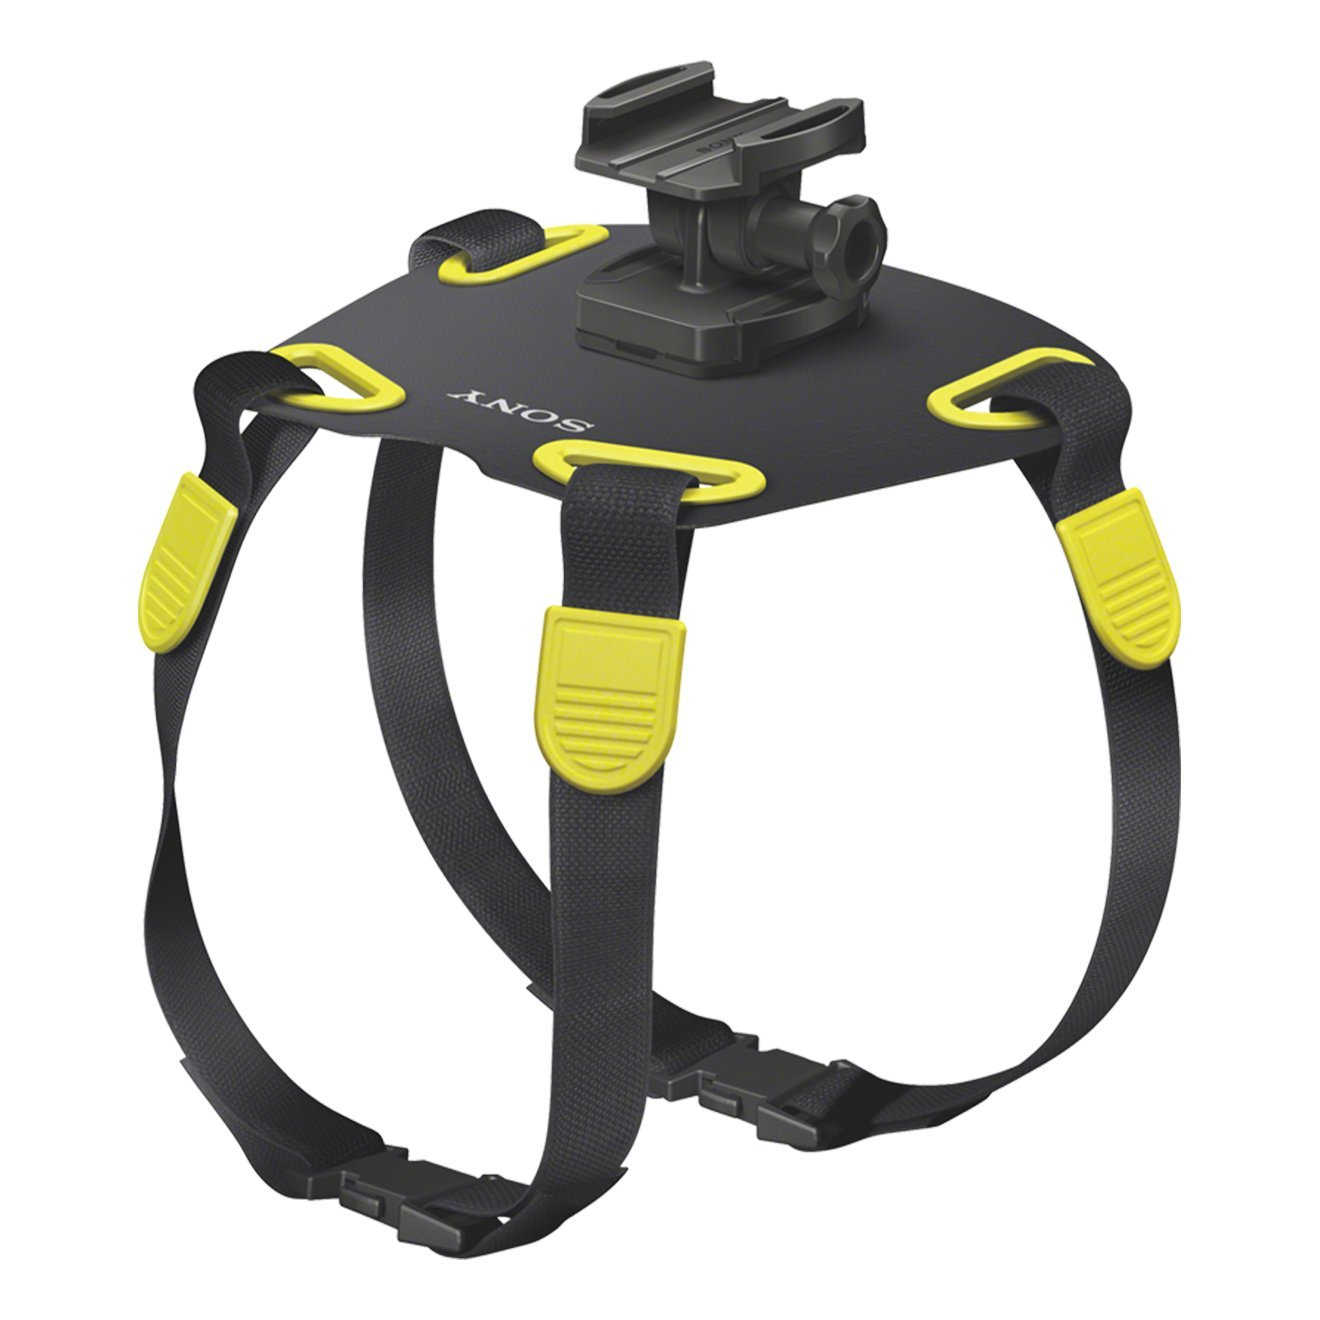 Sony AKADMI Action Dog Harness for Camera